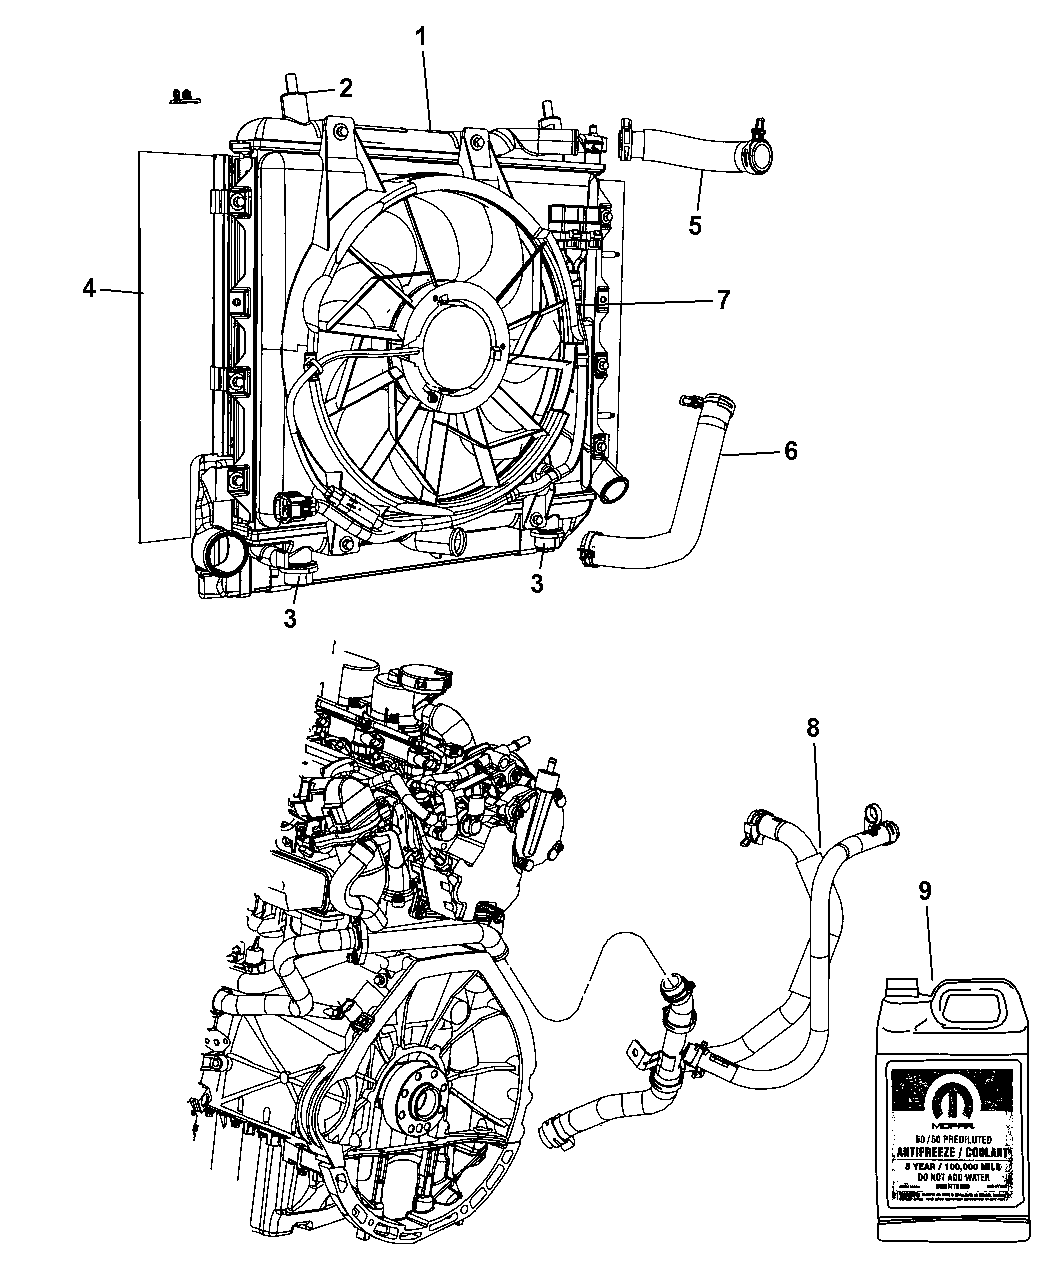 2009 pt cruiser engine diagram